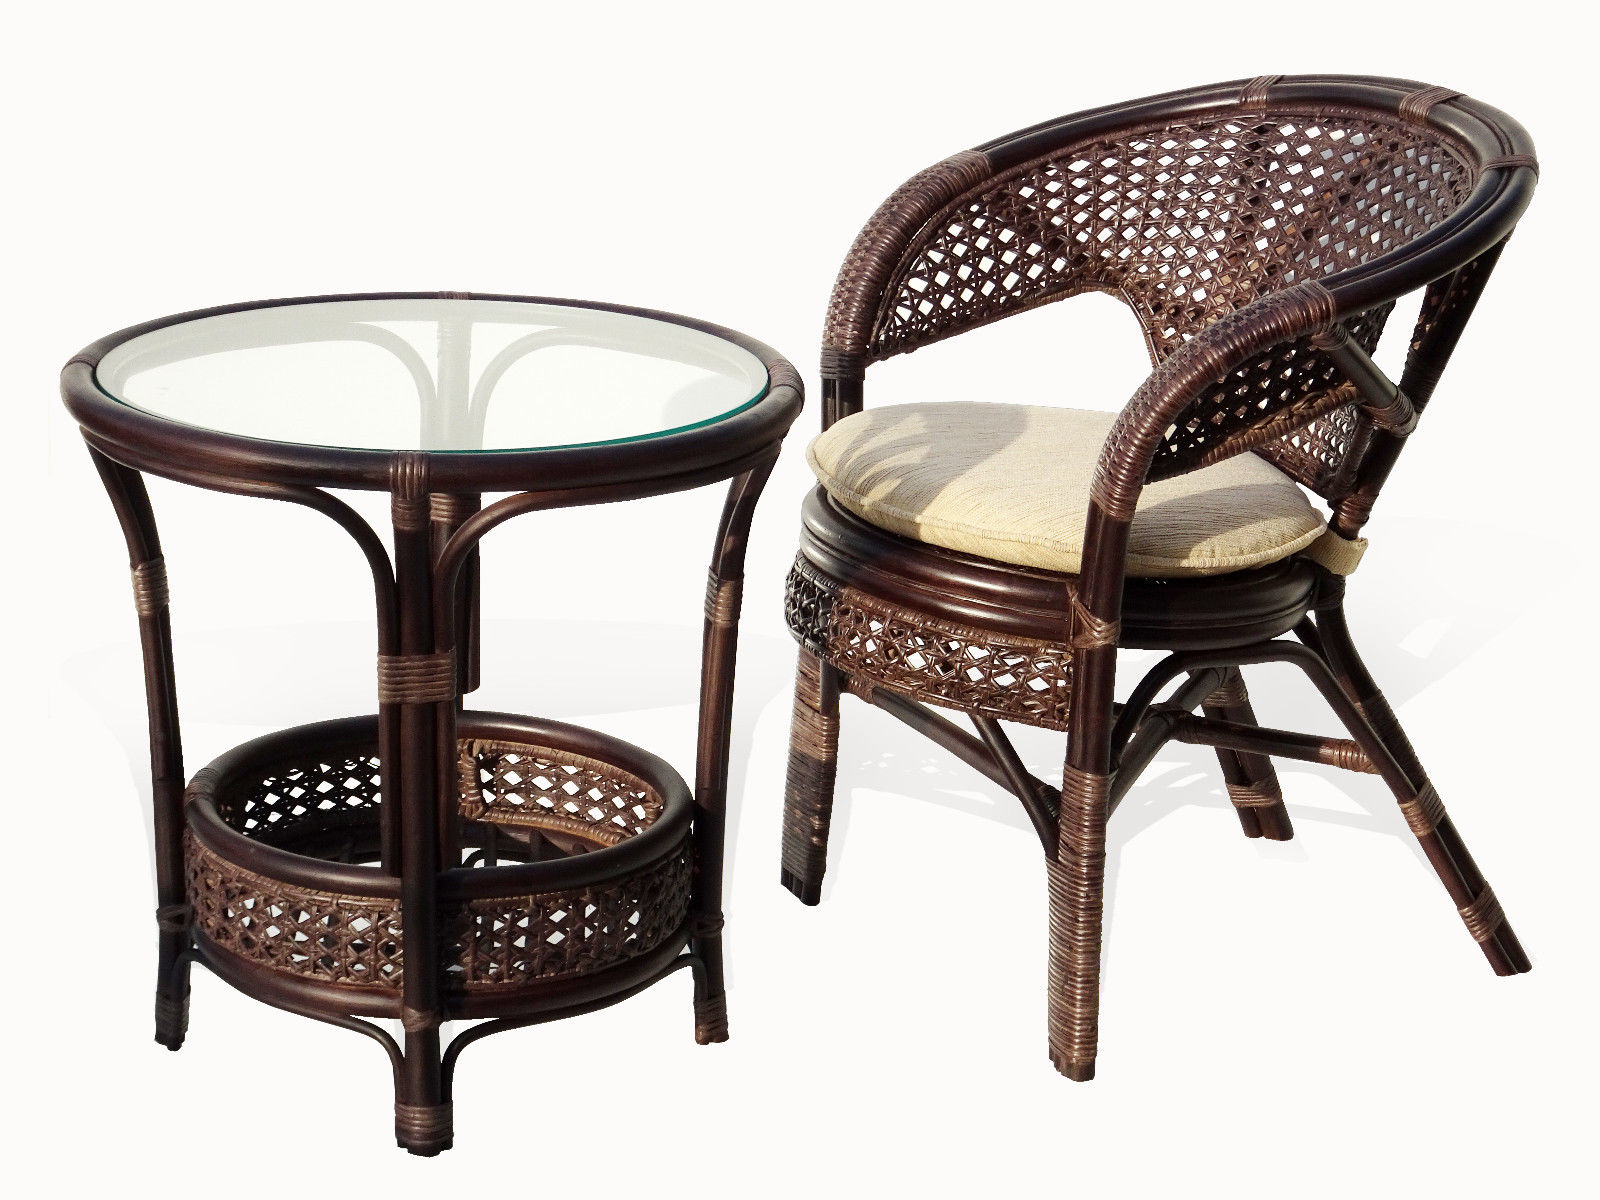 Pelangi Lounge Set Of Round Coffee Table And Natural Rattan Wicker Chair  Handmade Design, Dark Brown   Walmart.com